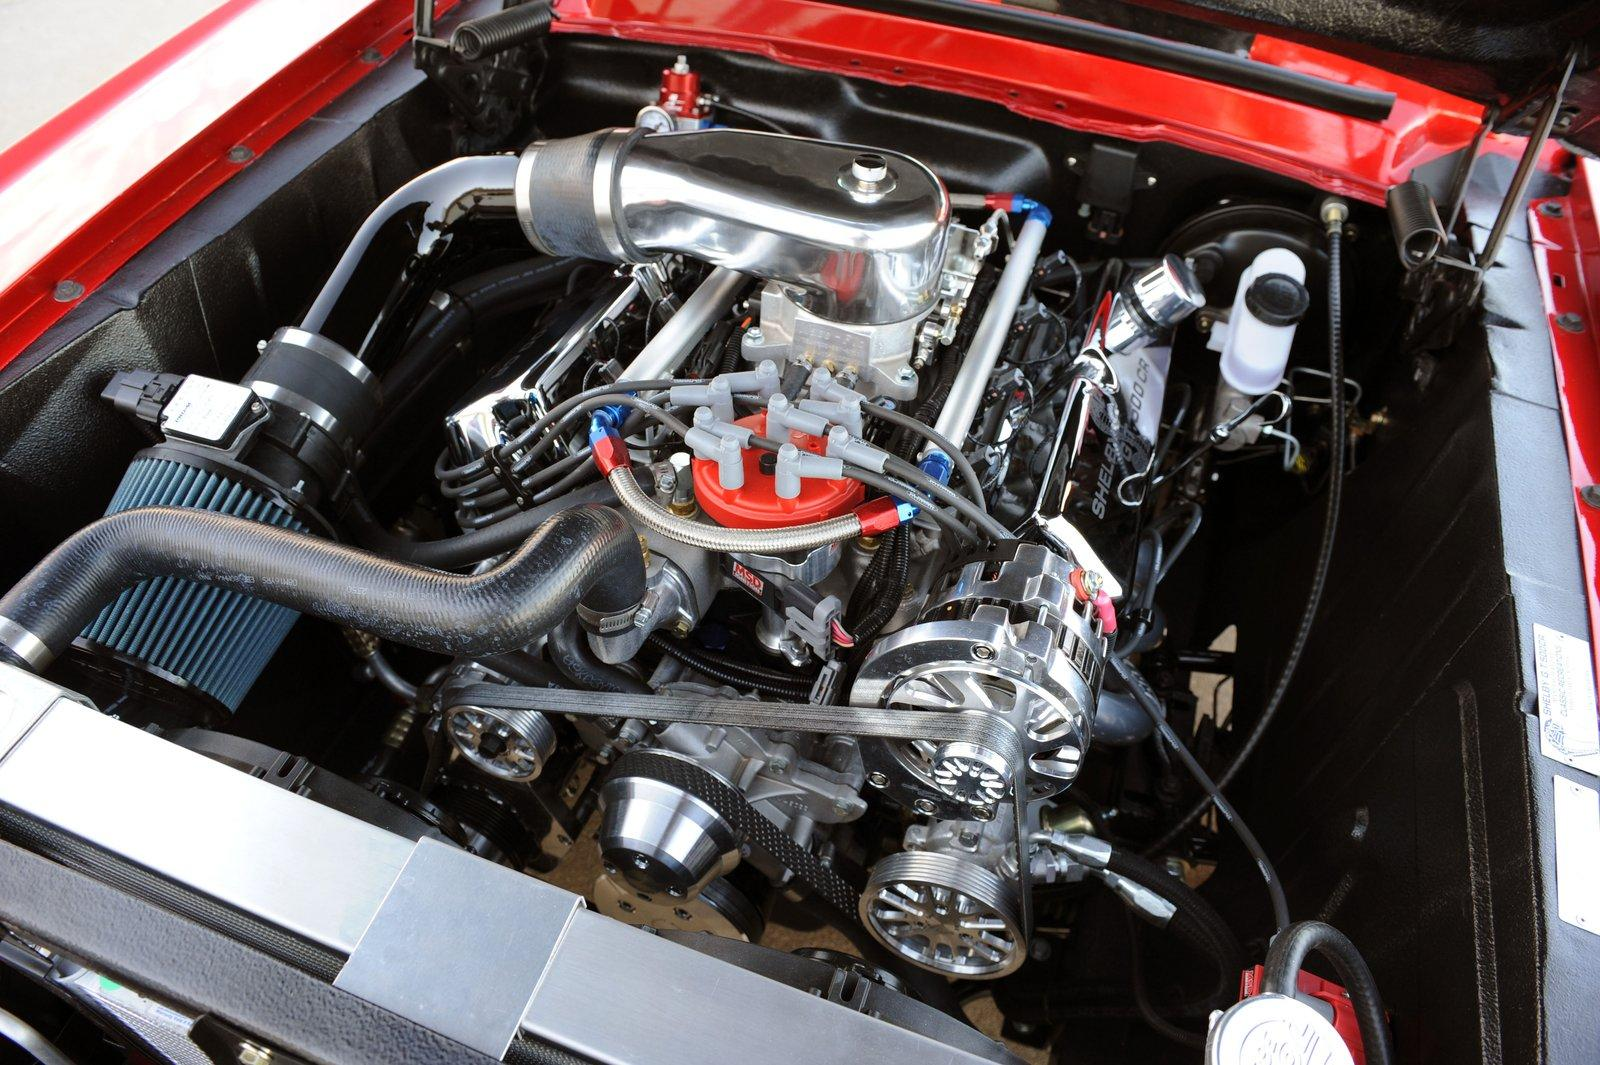 Classic Mustang Car Wallpaper 1967 Shelby Gt500cr A Brutal Car From Classic Recreations